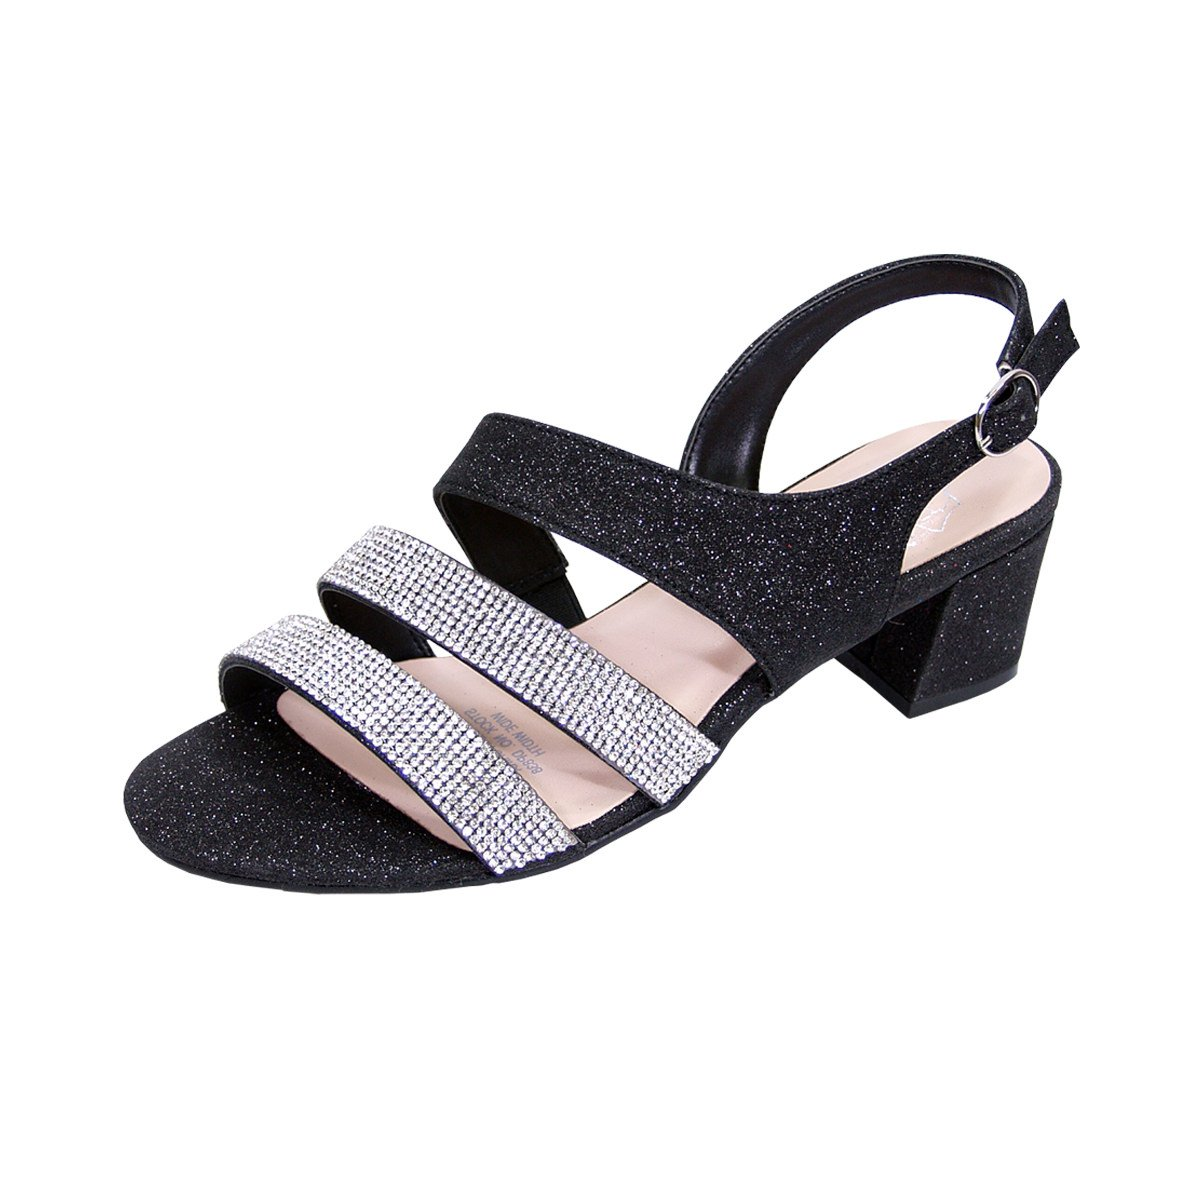 Floral Dorothy Women Extra Wide Width Chic Rhinestone Straps Dressy Party Heeled Sandals Black 9